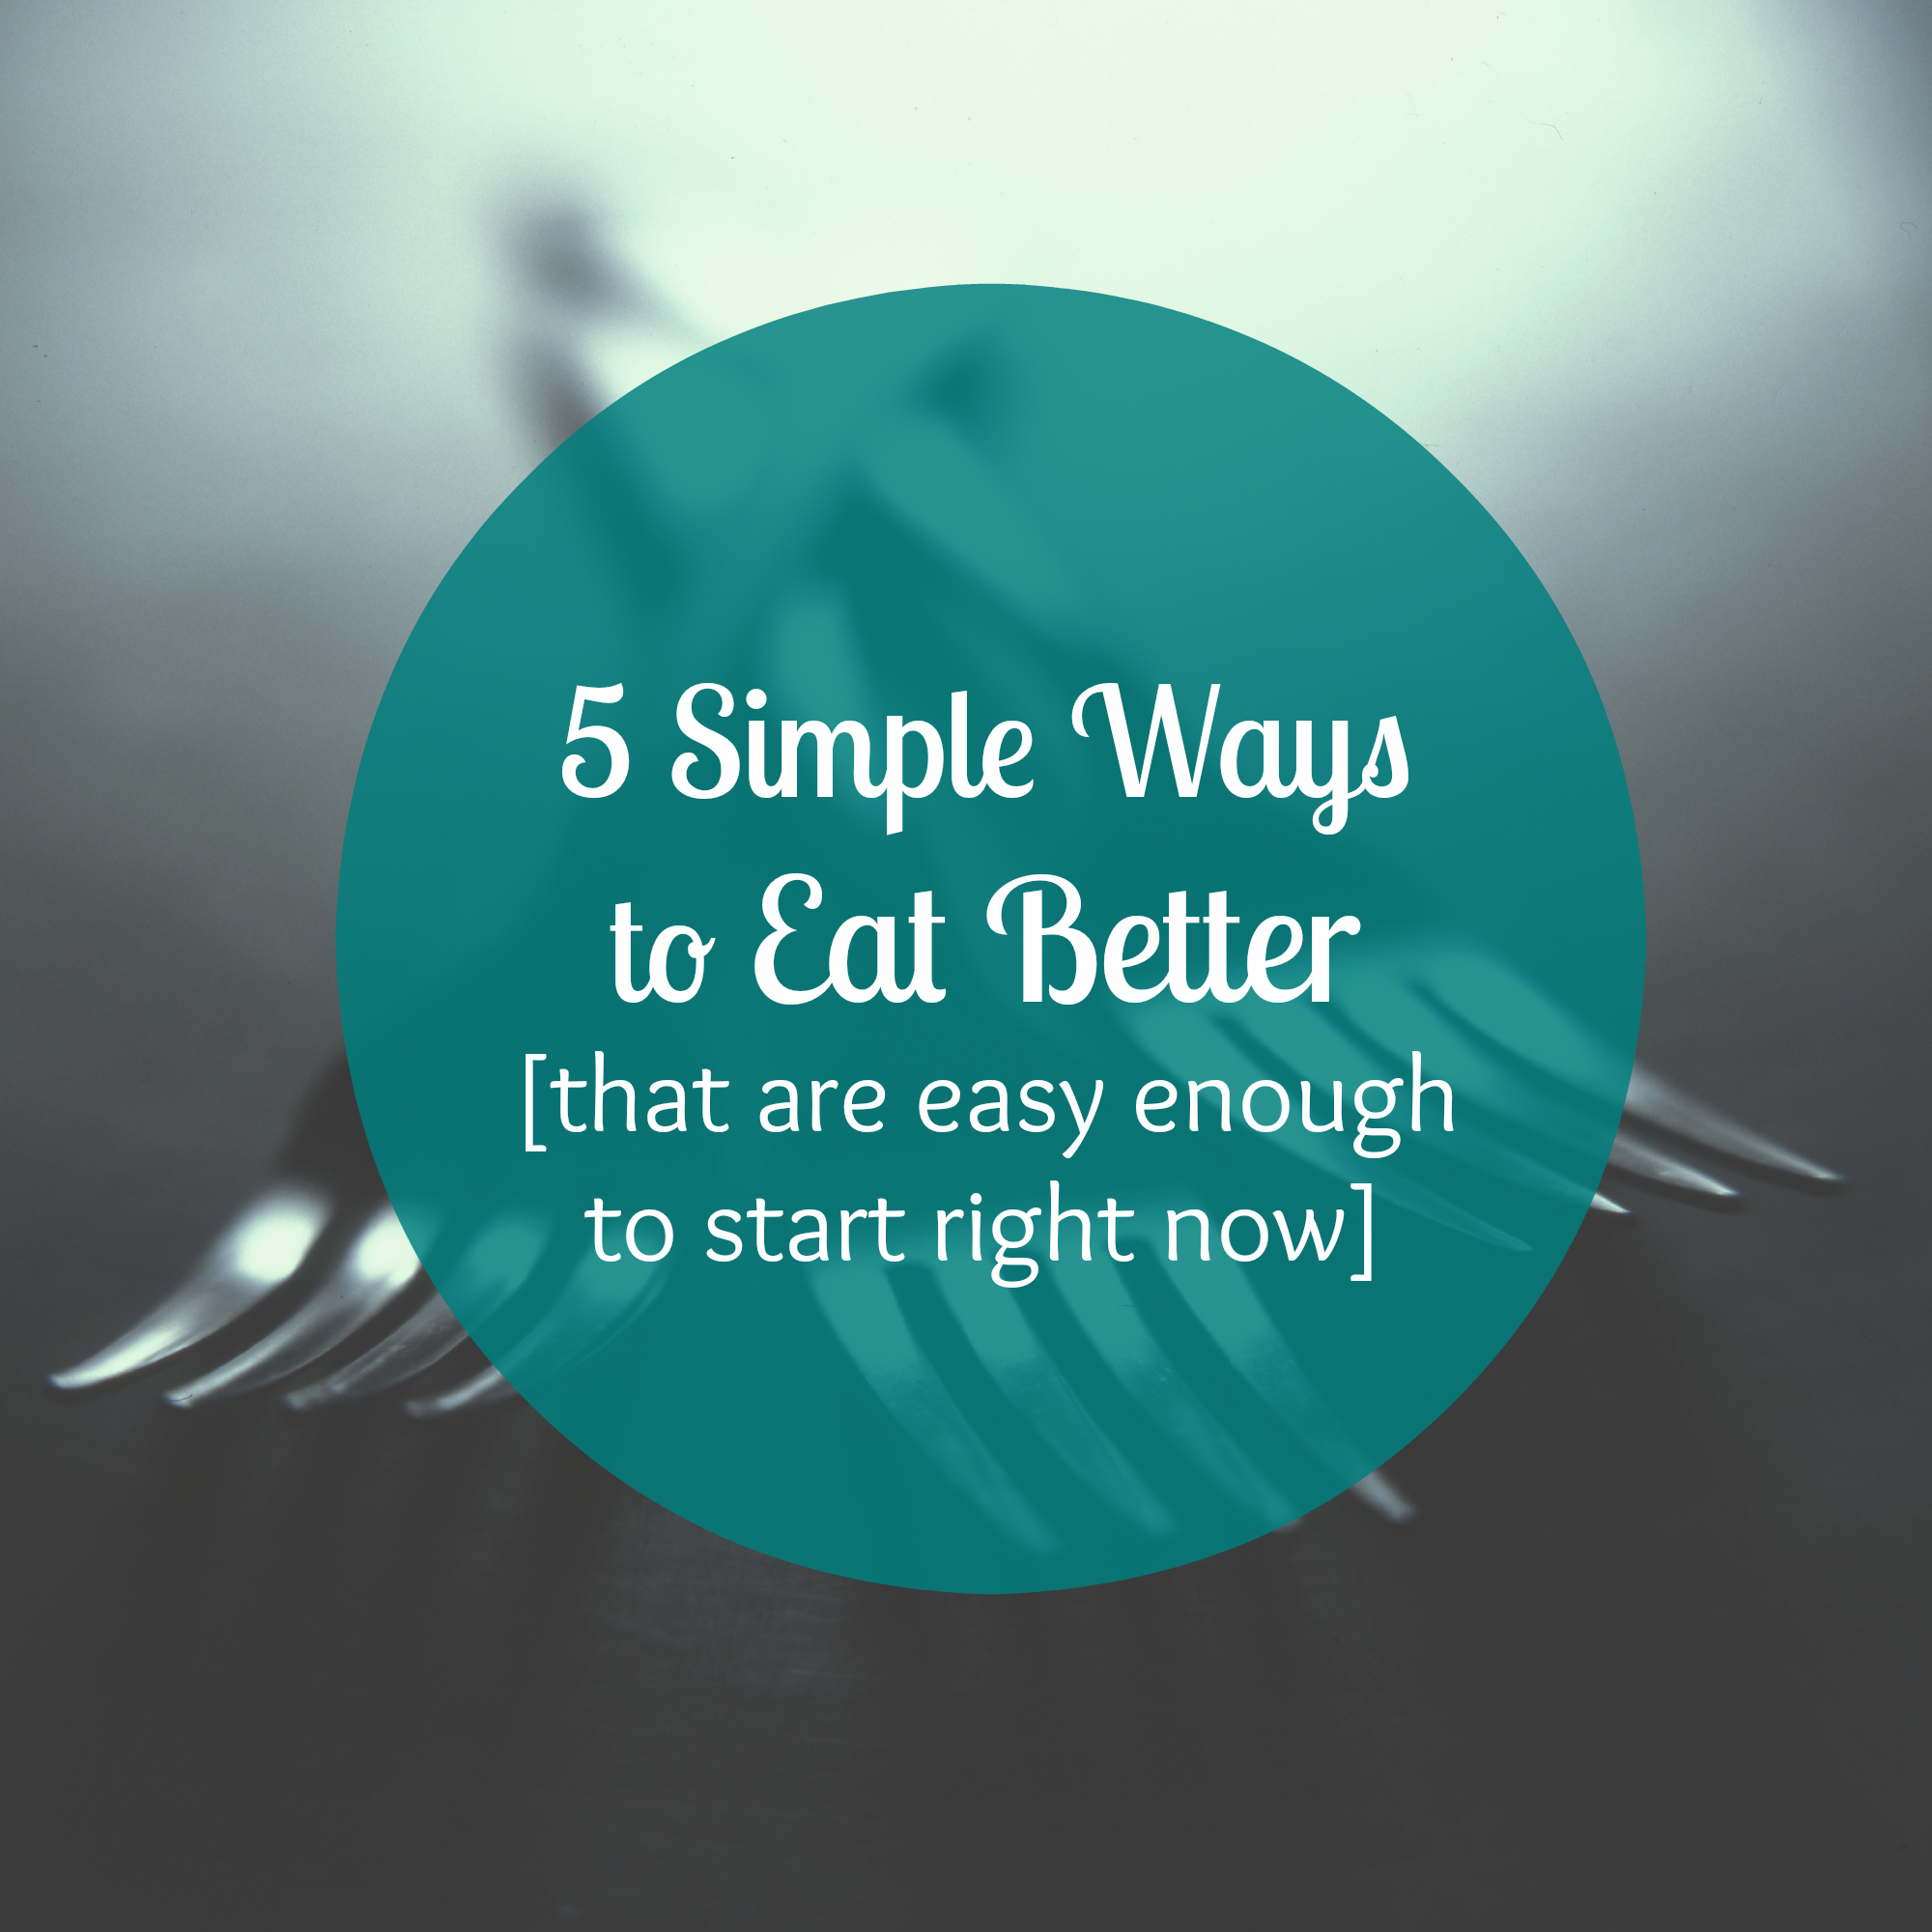 5 Simple Ways to Eat Better